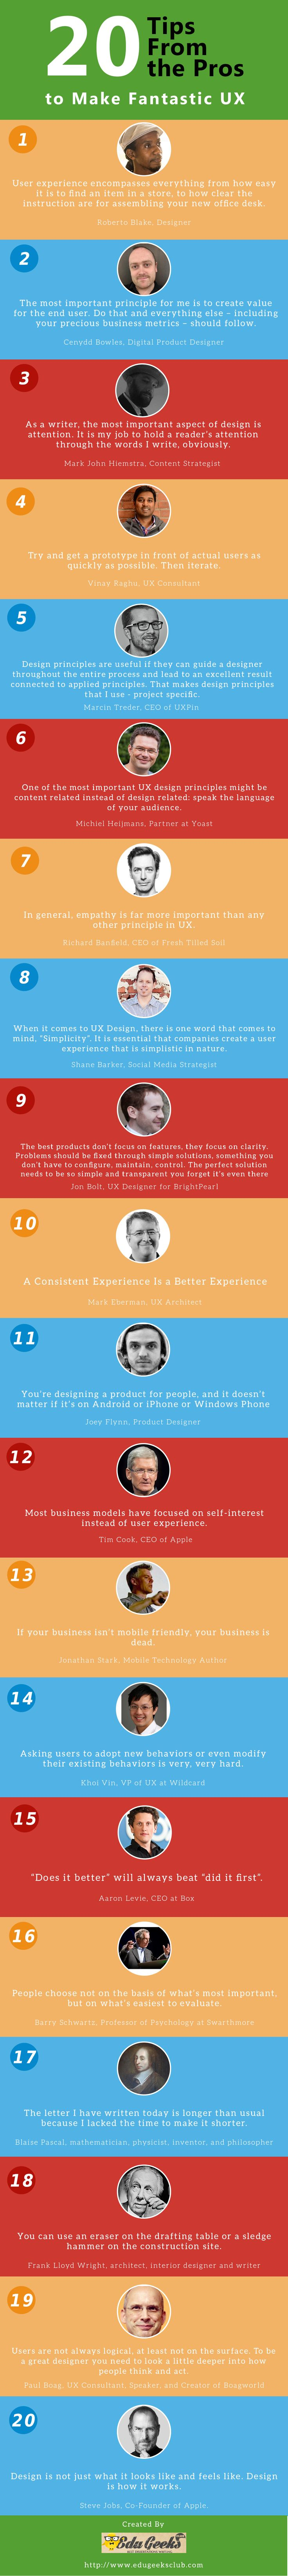 https://social-media-strategy-template.blogspot.com/ #UserExperience #UX 20 Tips from the Pros to Make Fantastic User Experience [Infographic]